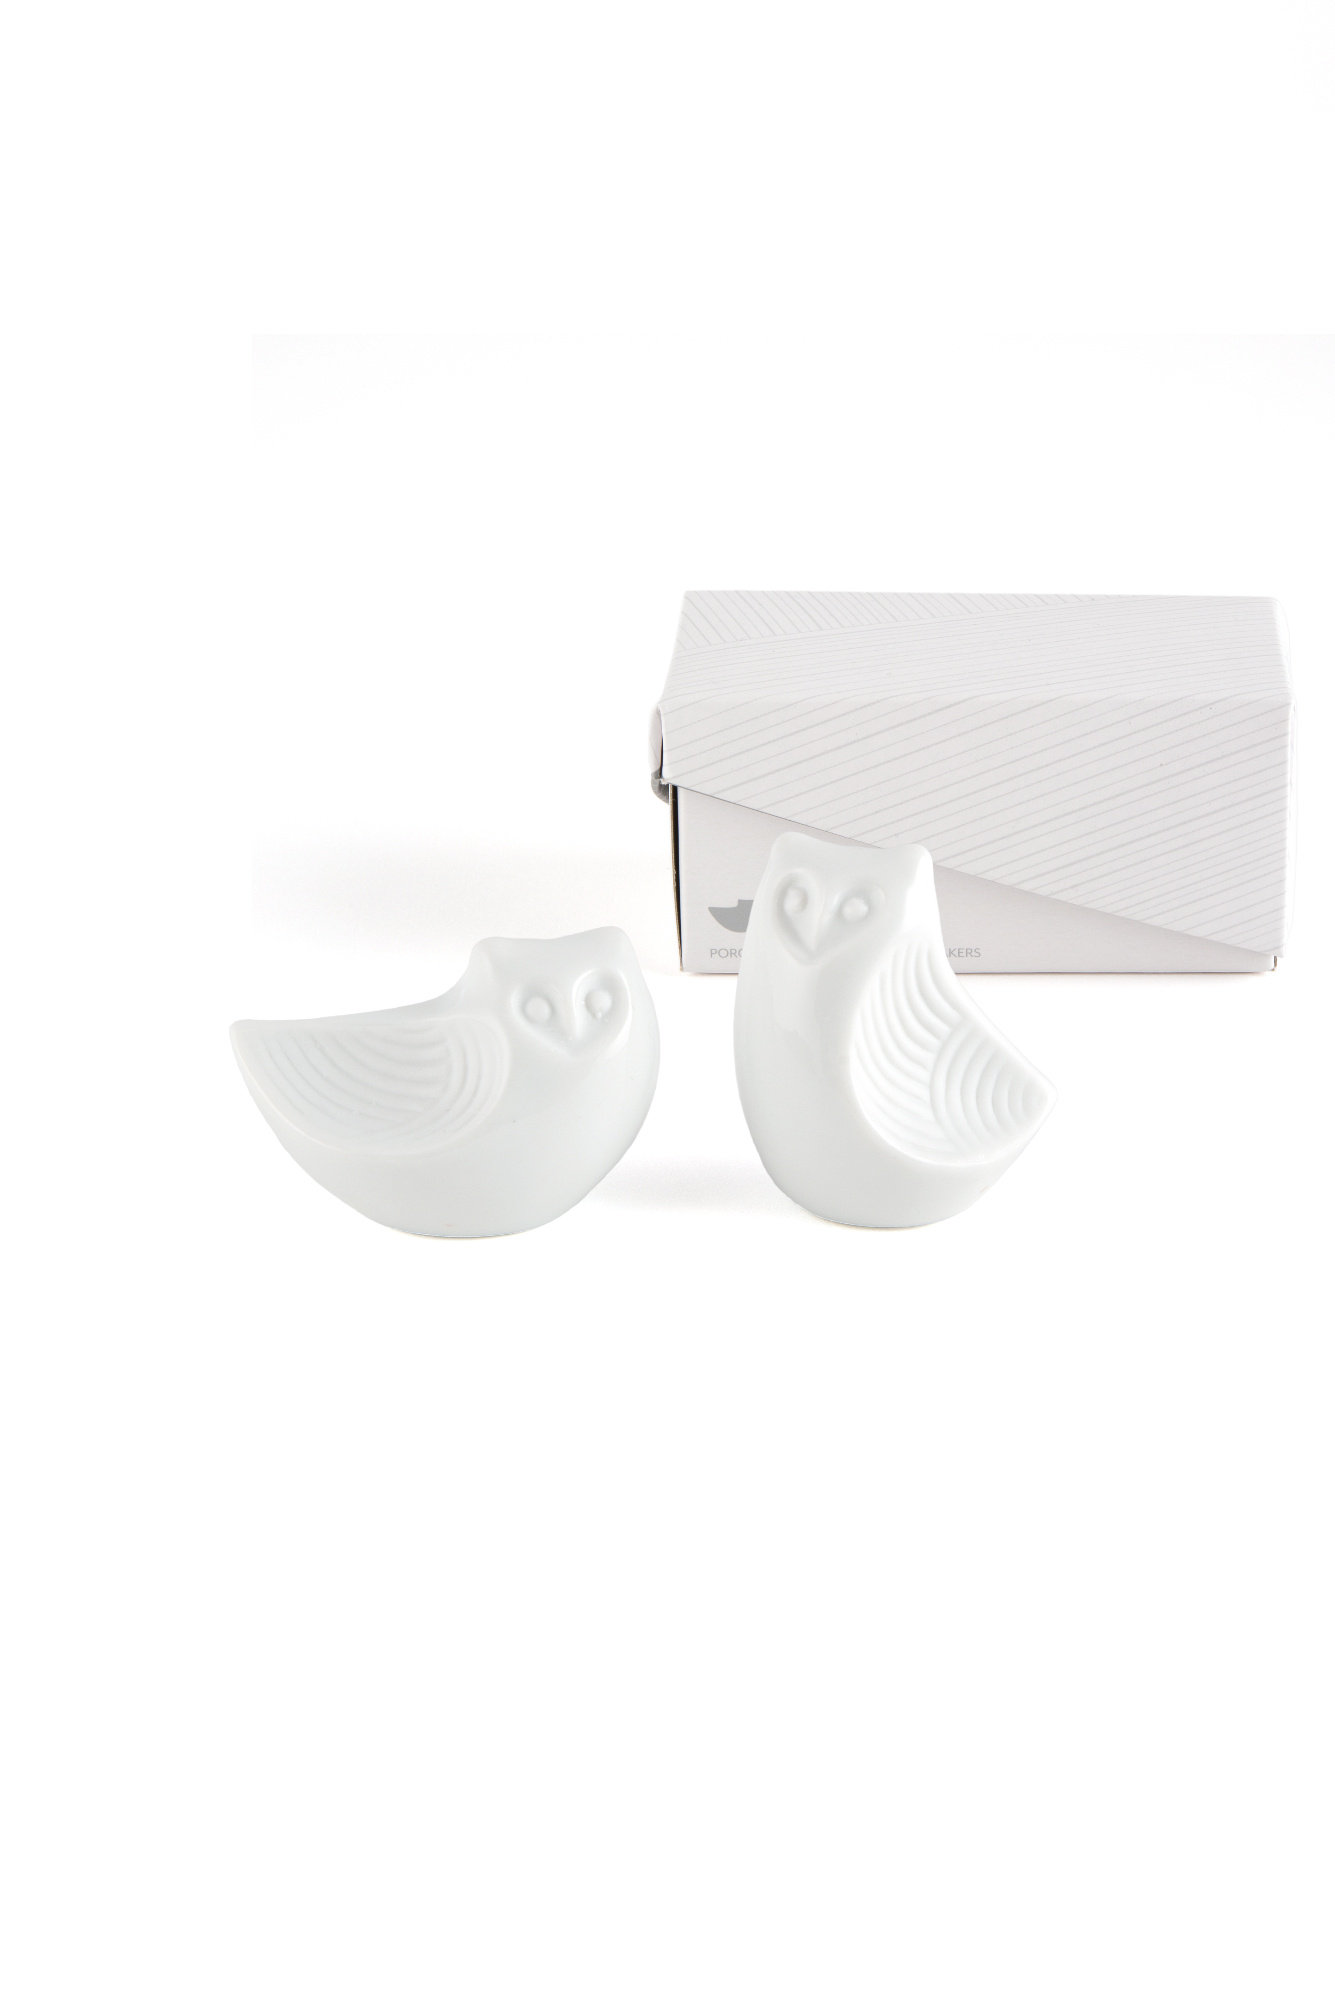 Weddingstar Salt and Pepper Shakers Owl White Ceramic with Gift box